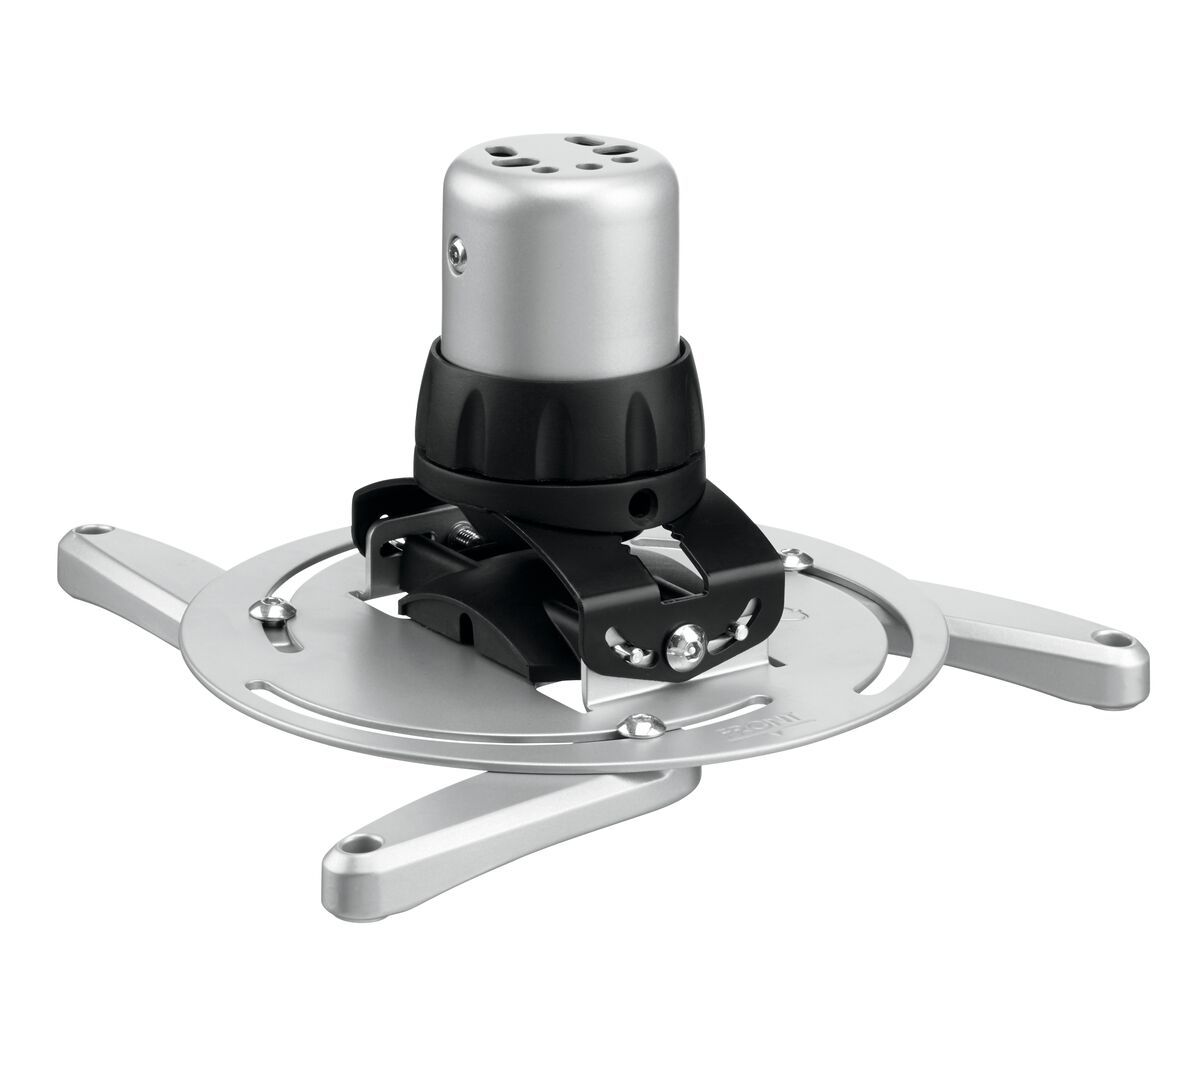 Vogel's PPC 1500 Projector ceiling mount silver - Product